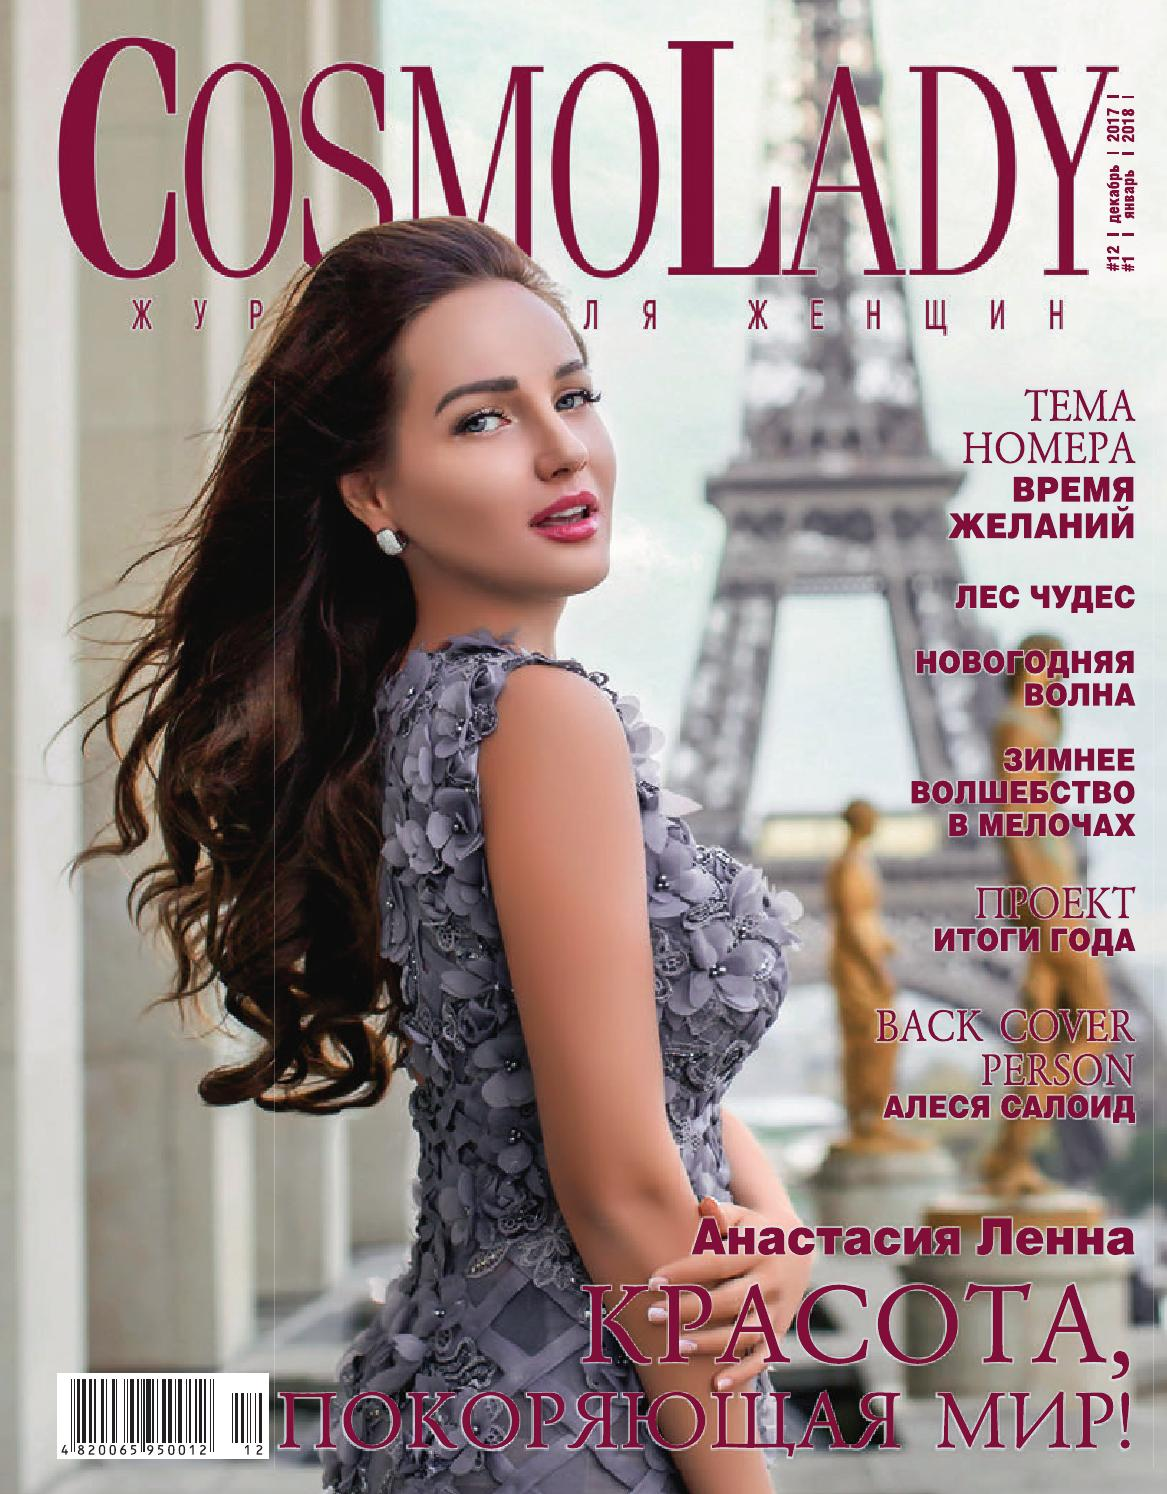 e28631dfcf9d7 Cosmo lady 122017 by Тімур Продащук - issuu